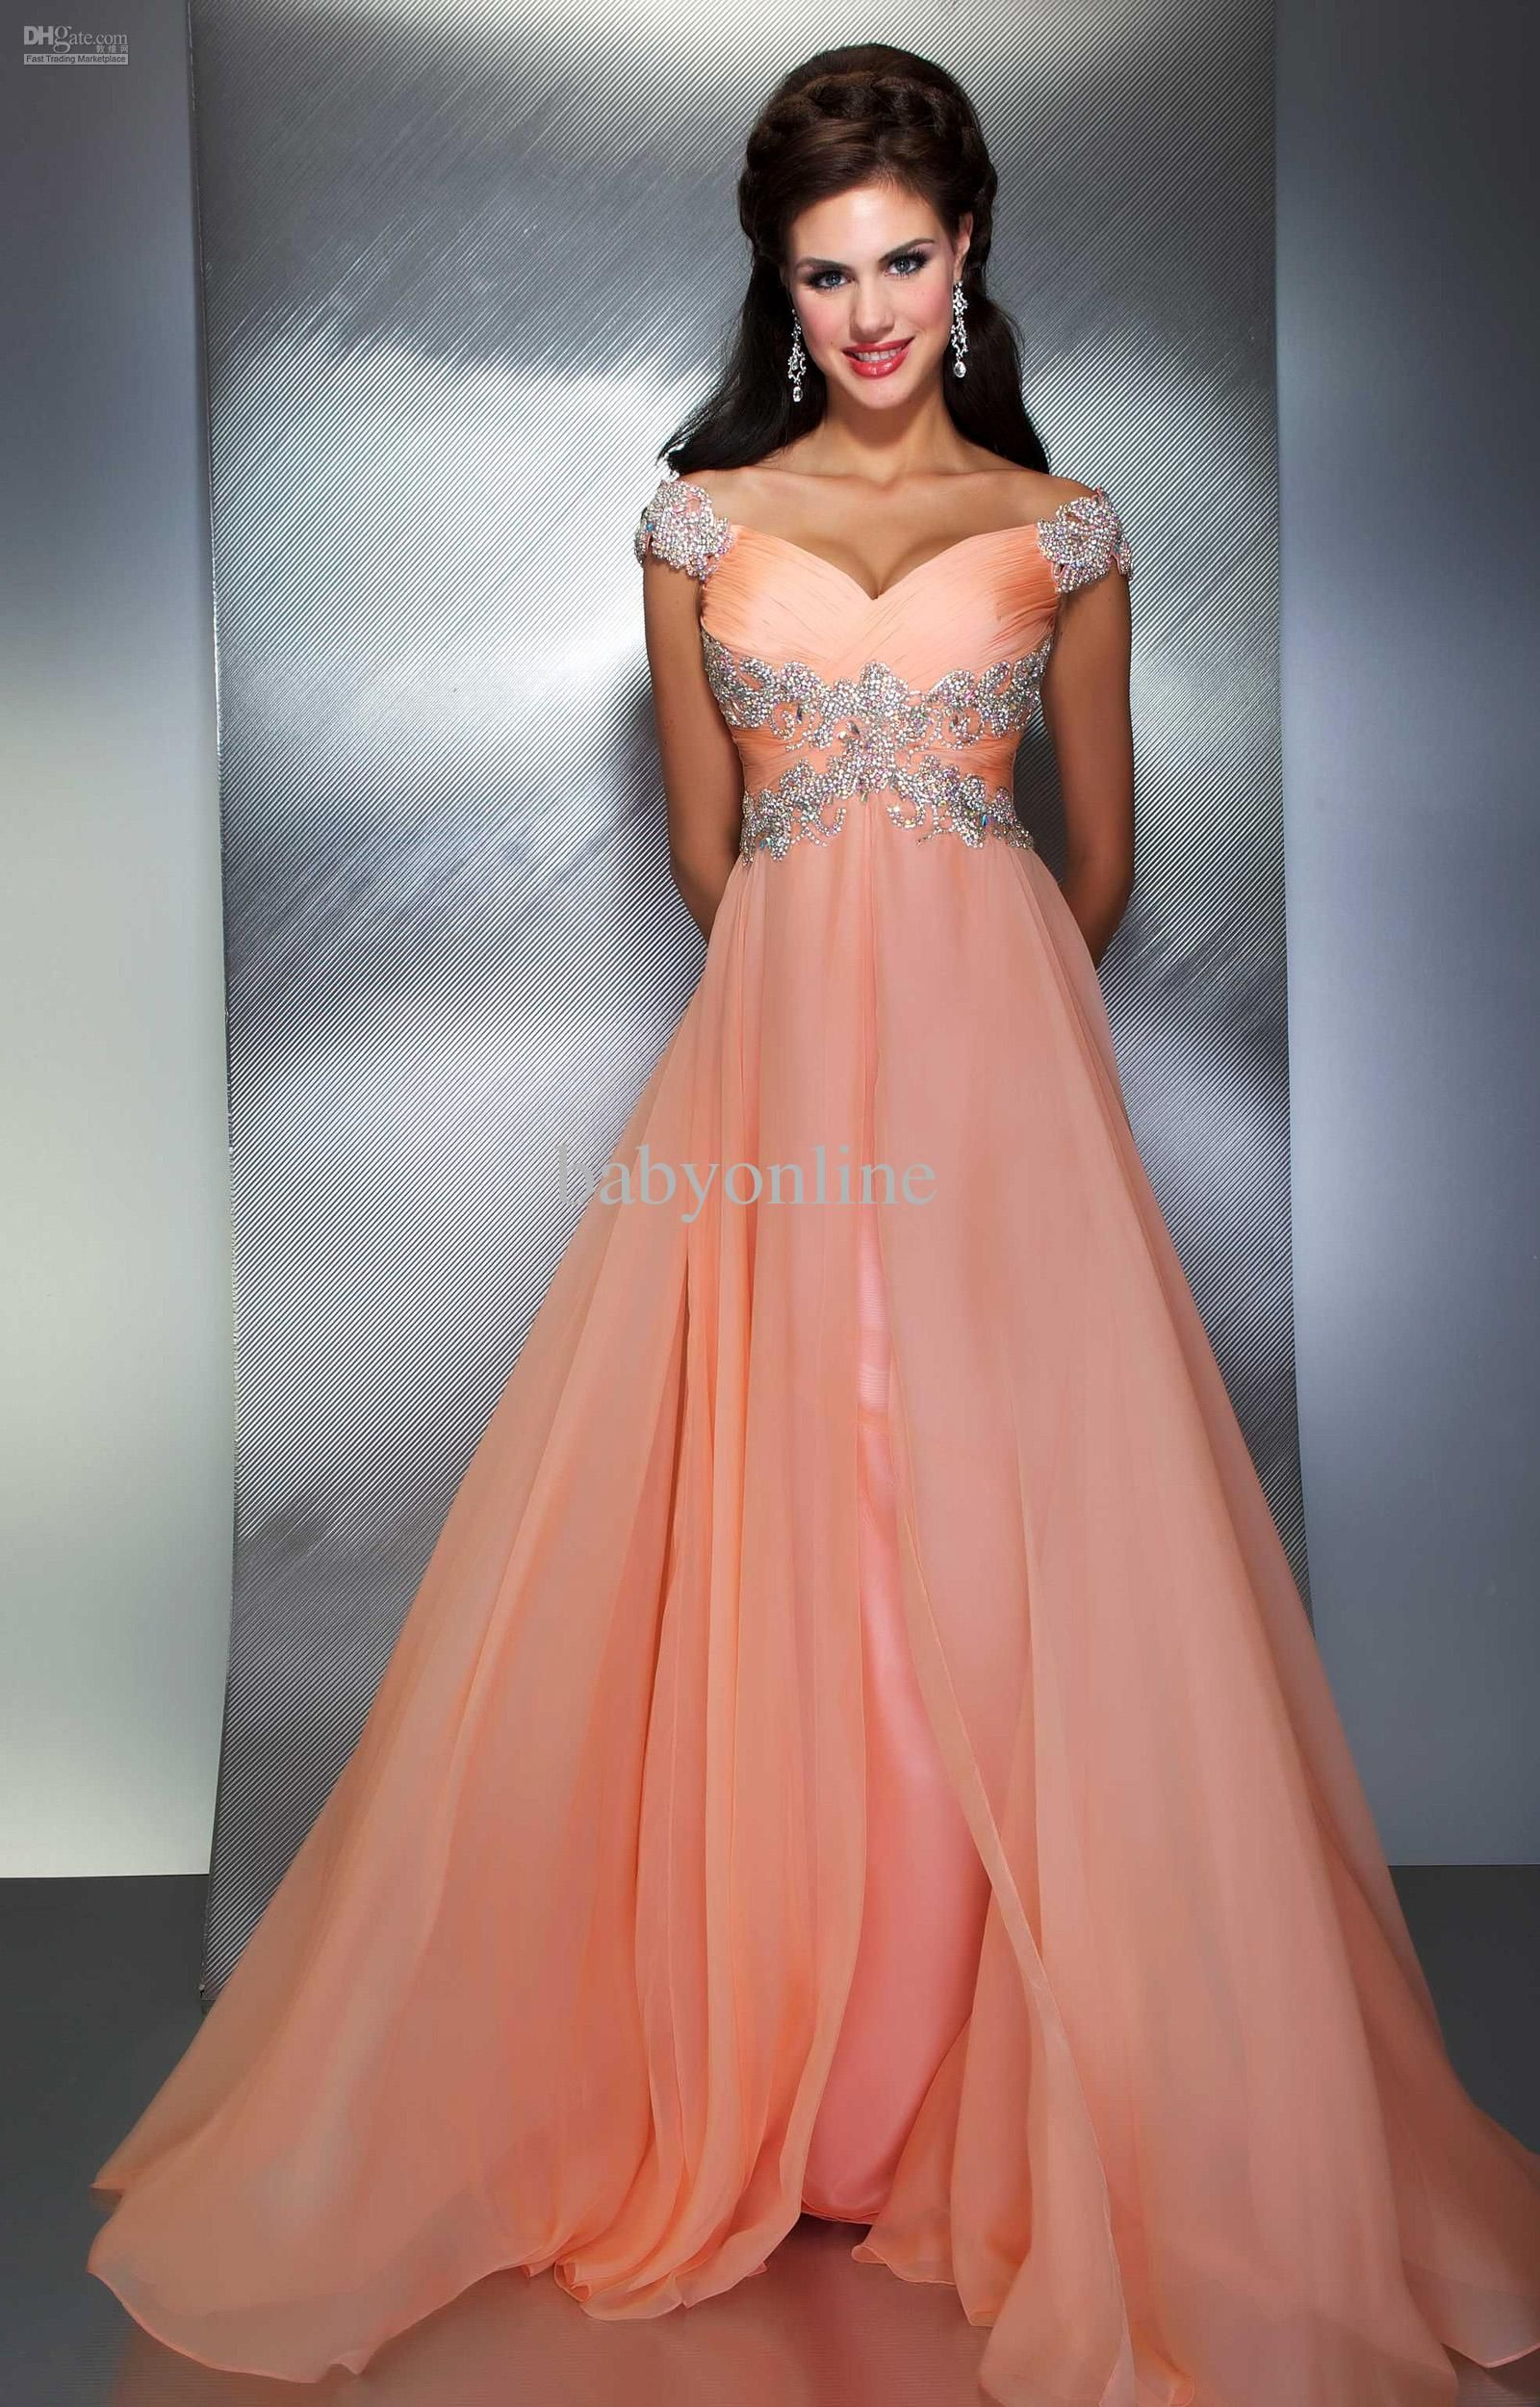 Wholesale pageant dresses buy cap sleeves sexy homecoming